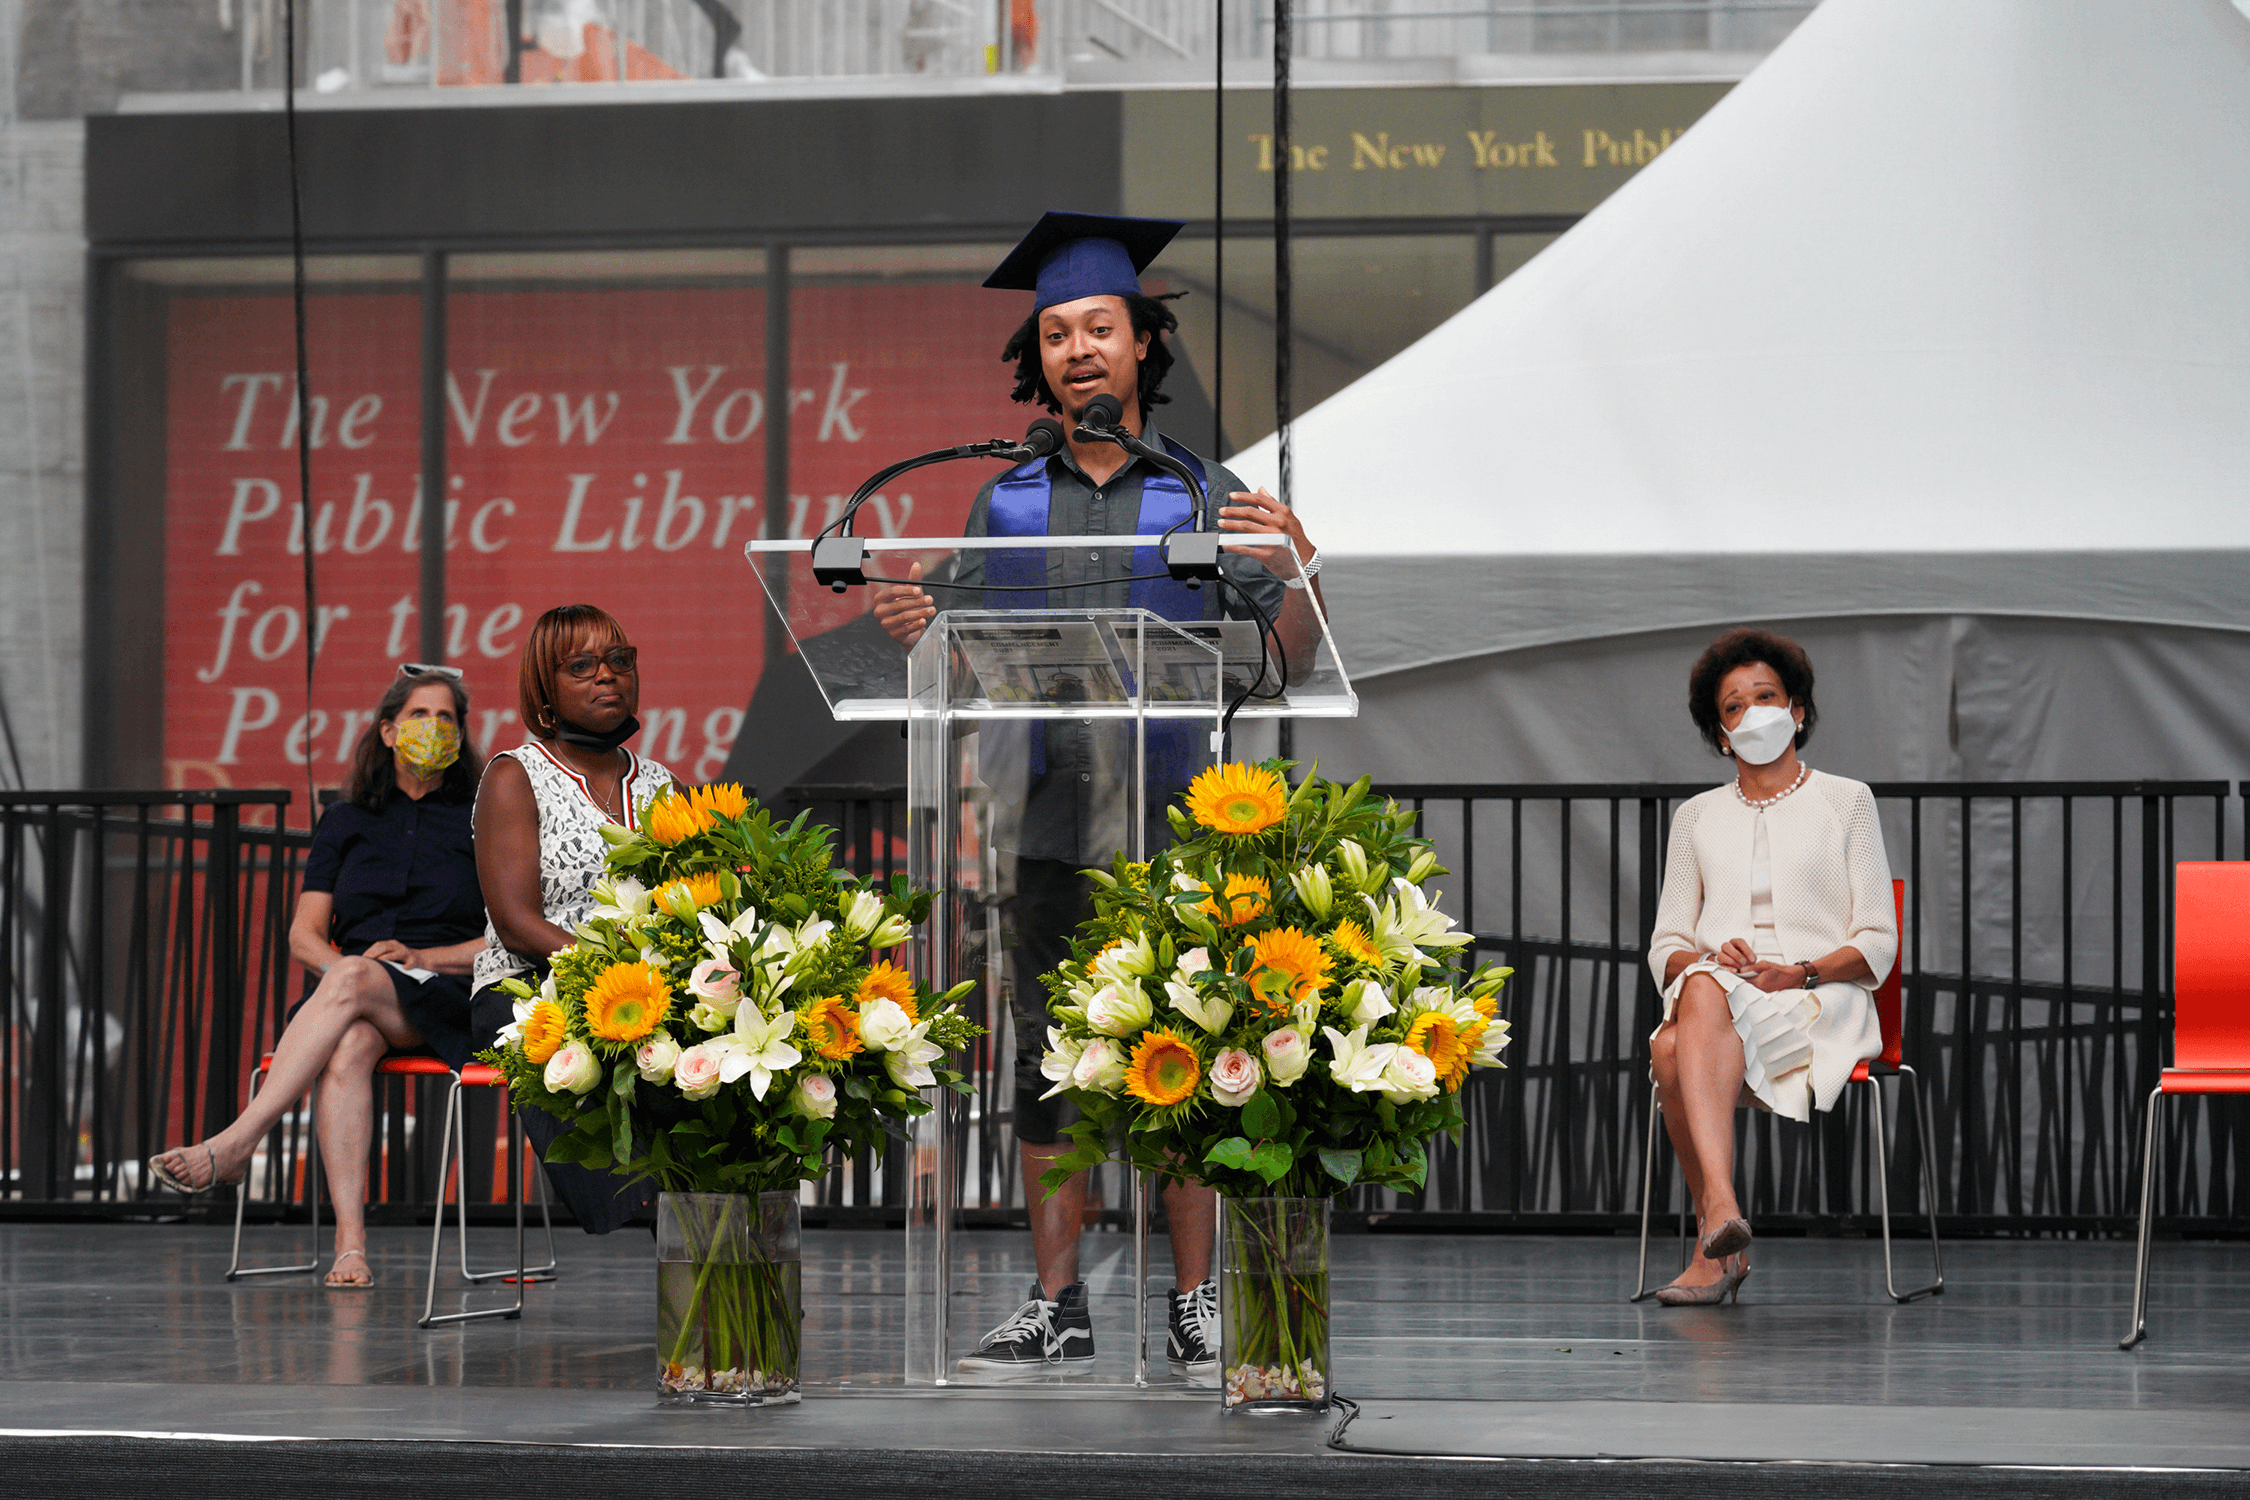 Student giving a speech on graduation stage